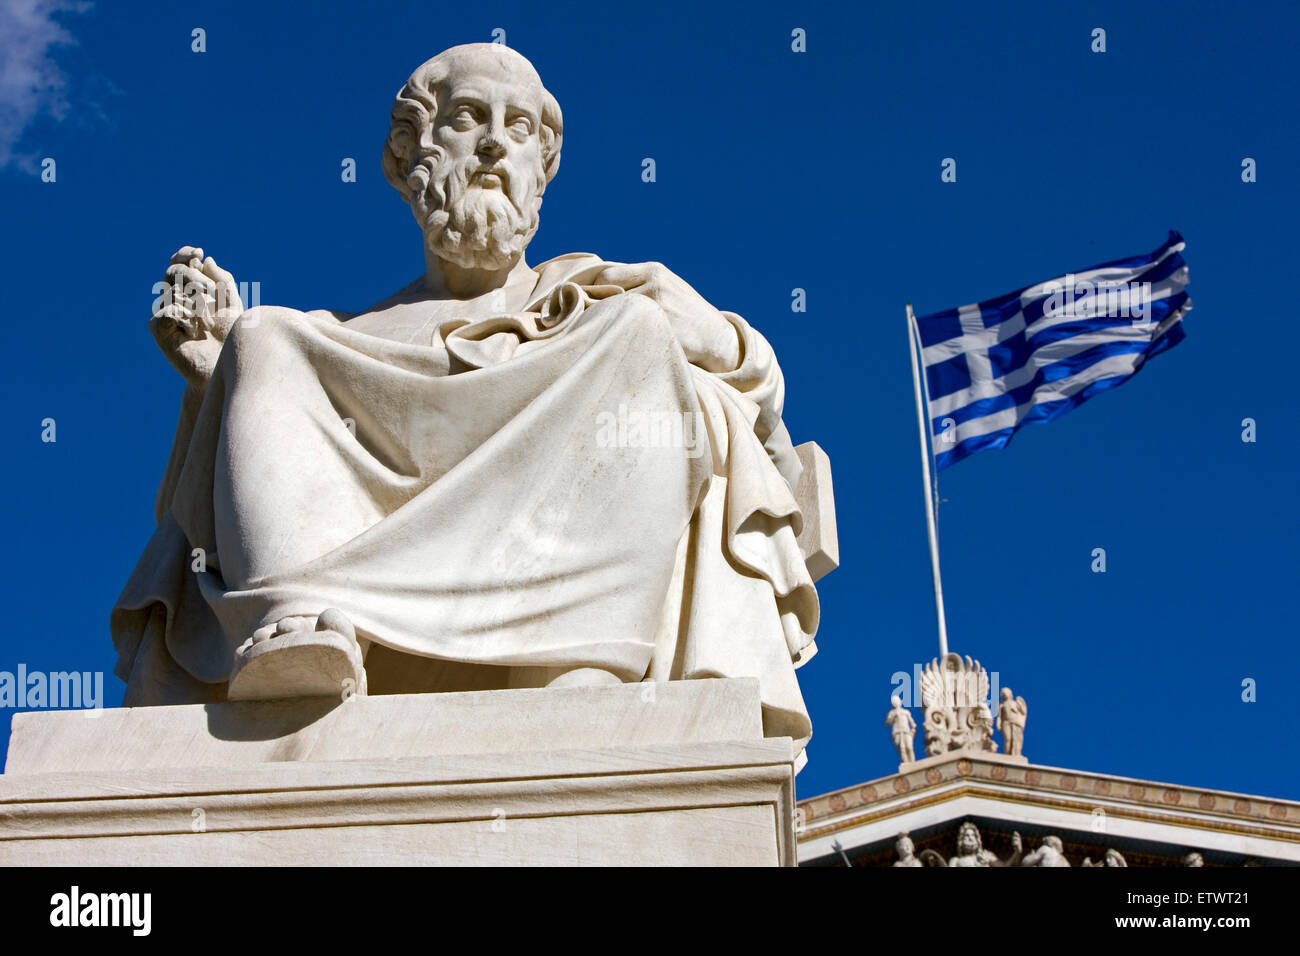 Marble statue of Greek philosopher Plato / Platon, outside Athens Academy. Panepistimiou str., Greece. - Stock Image